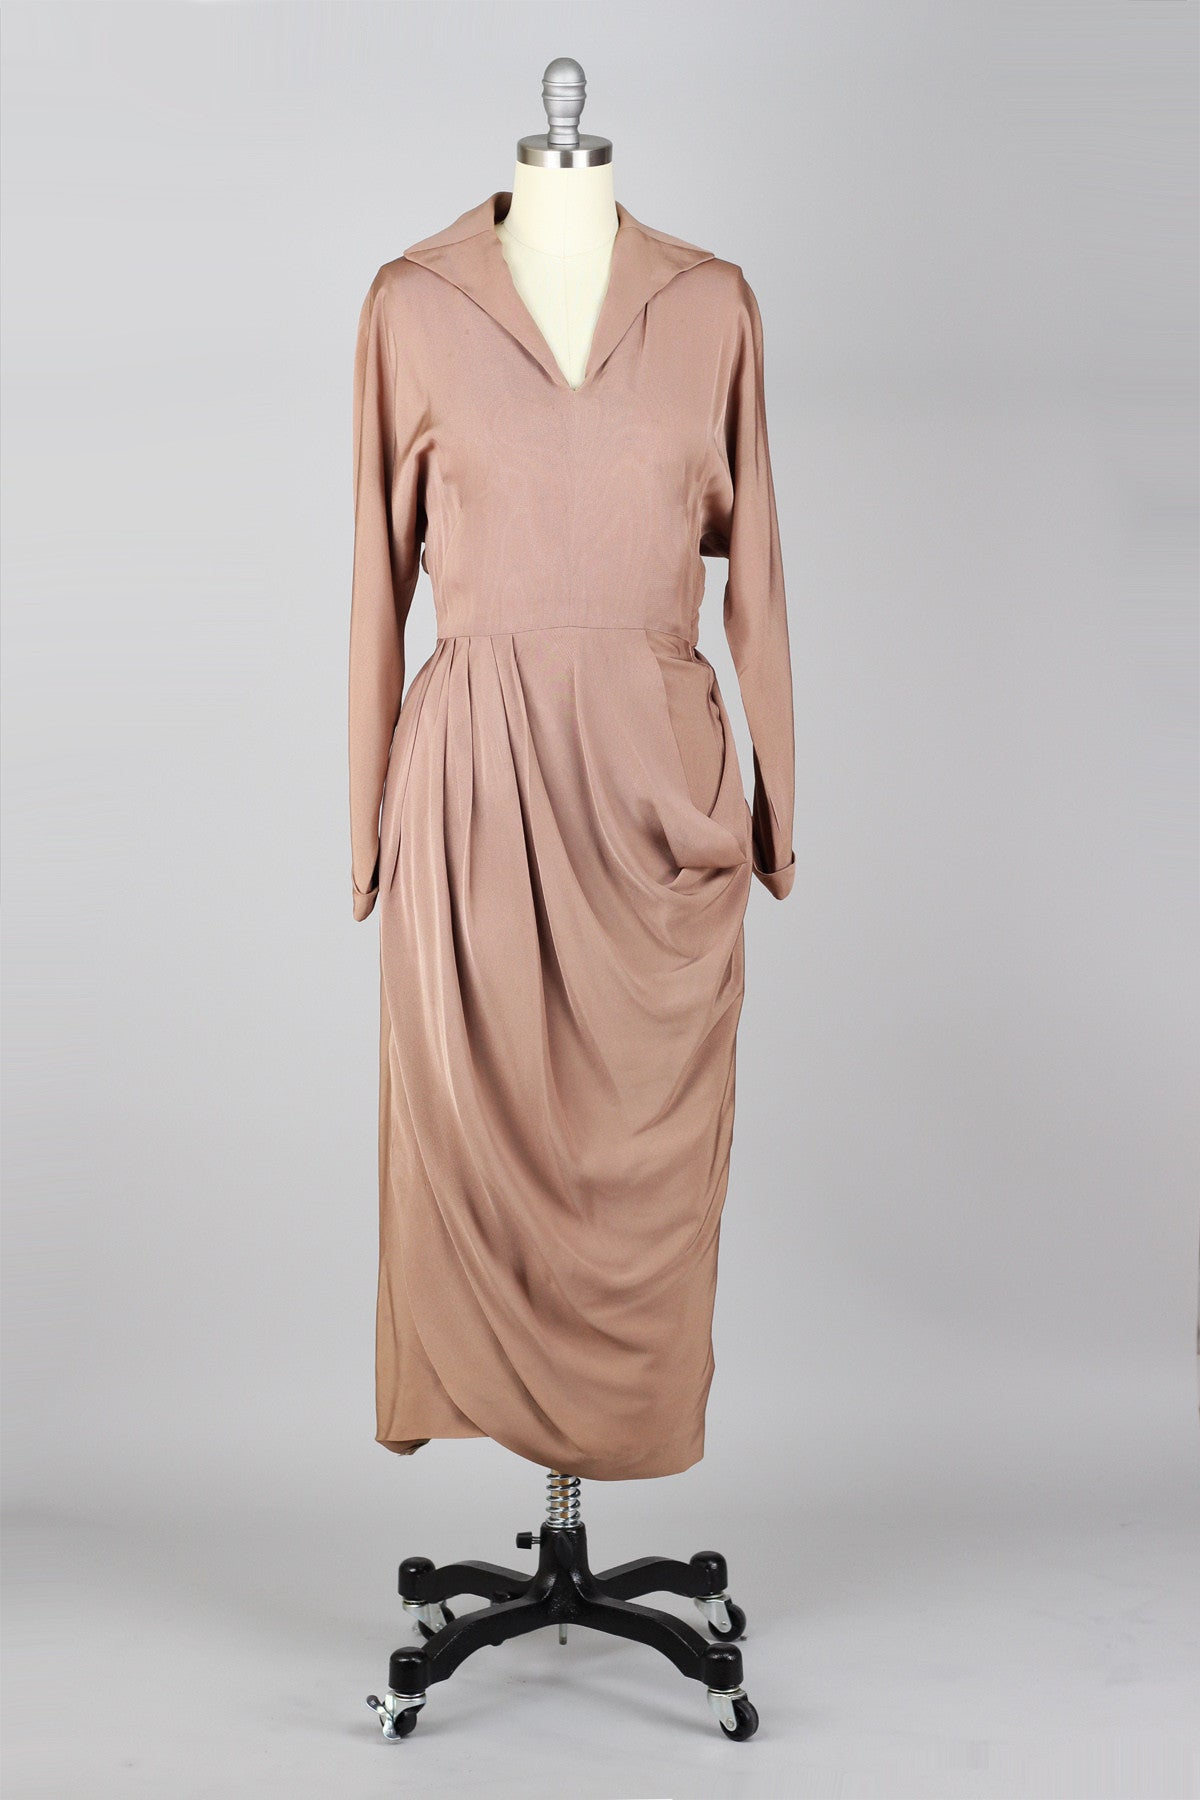 Exquisite 1940s to 1950s Rose Taupe Draped Rayon Crepe Cocktail ...